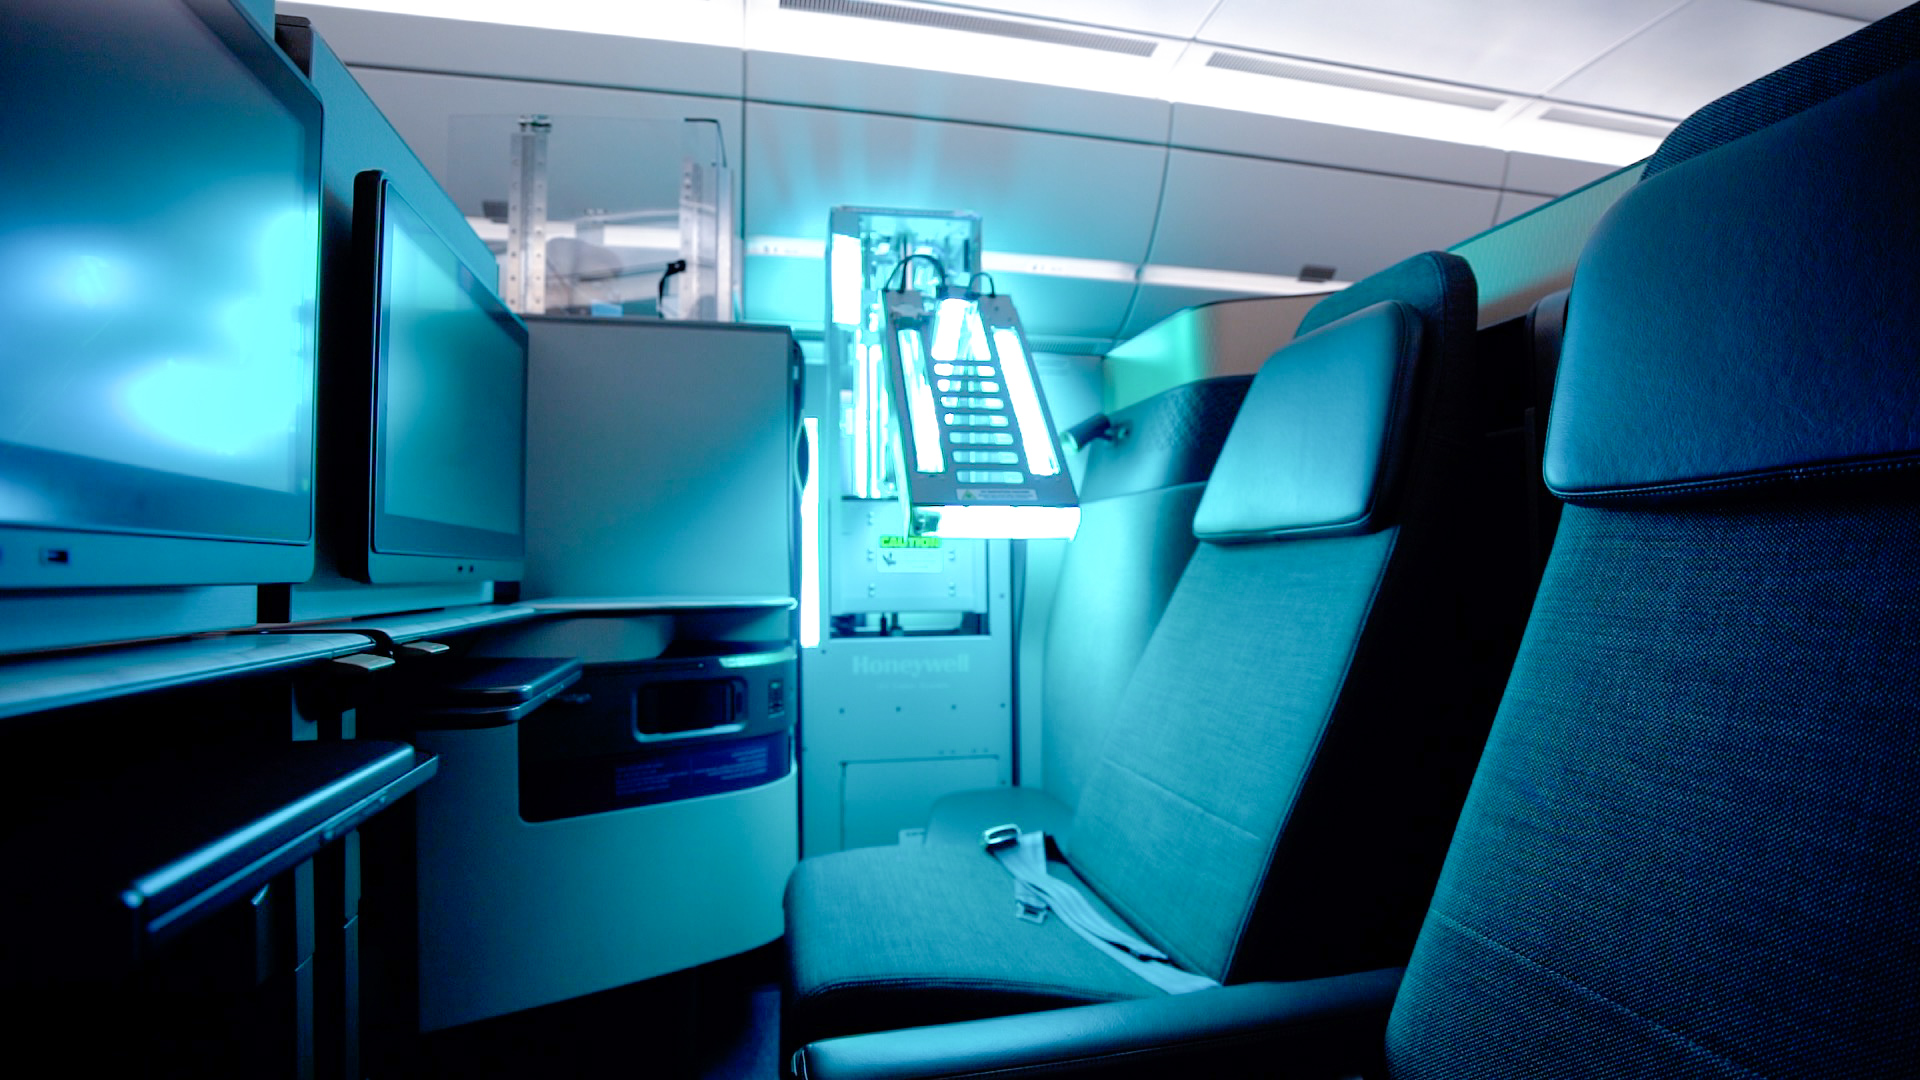 Qatar Airways is the first global company to use Honeywell devices to sterilize the cabin using UV rays